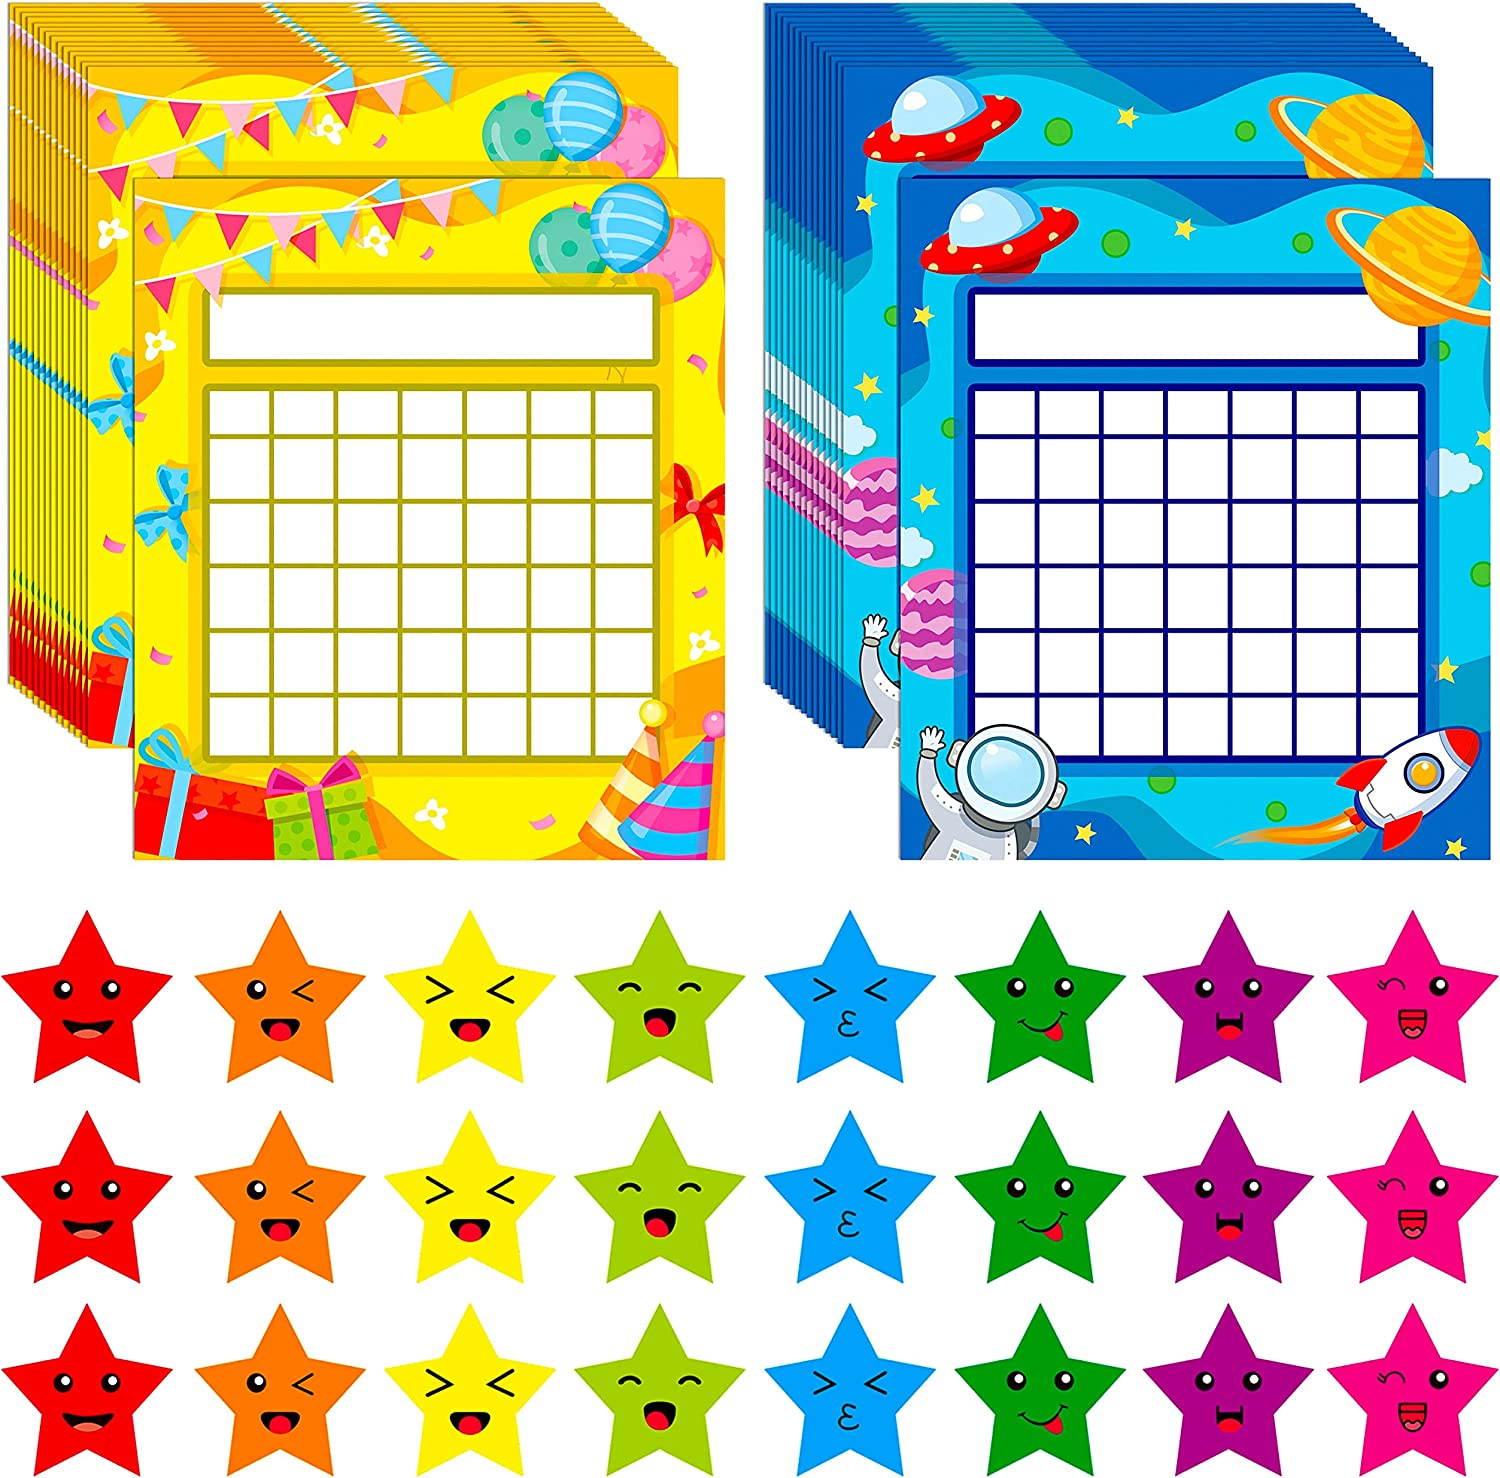 Amazon Com 66 Pack Classroom Incentive Chart In 2 Designs With 2024 Star Stickers Office Products